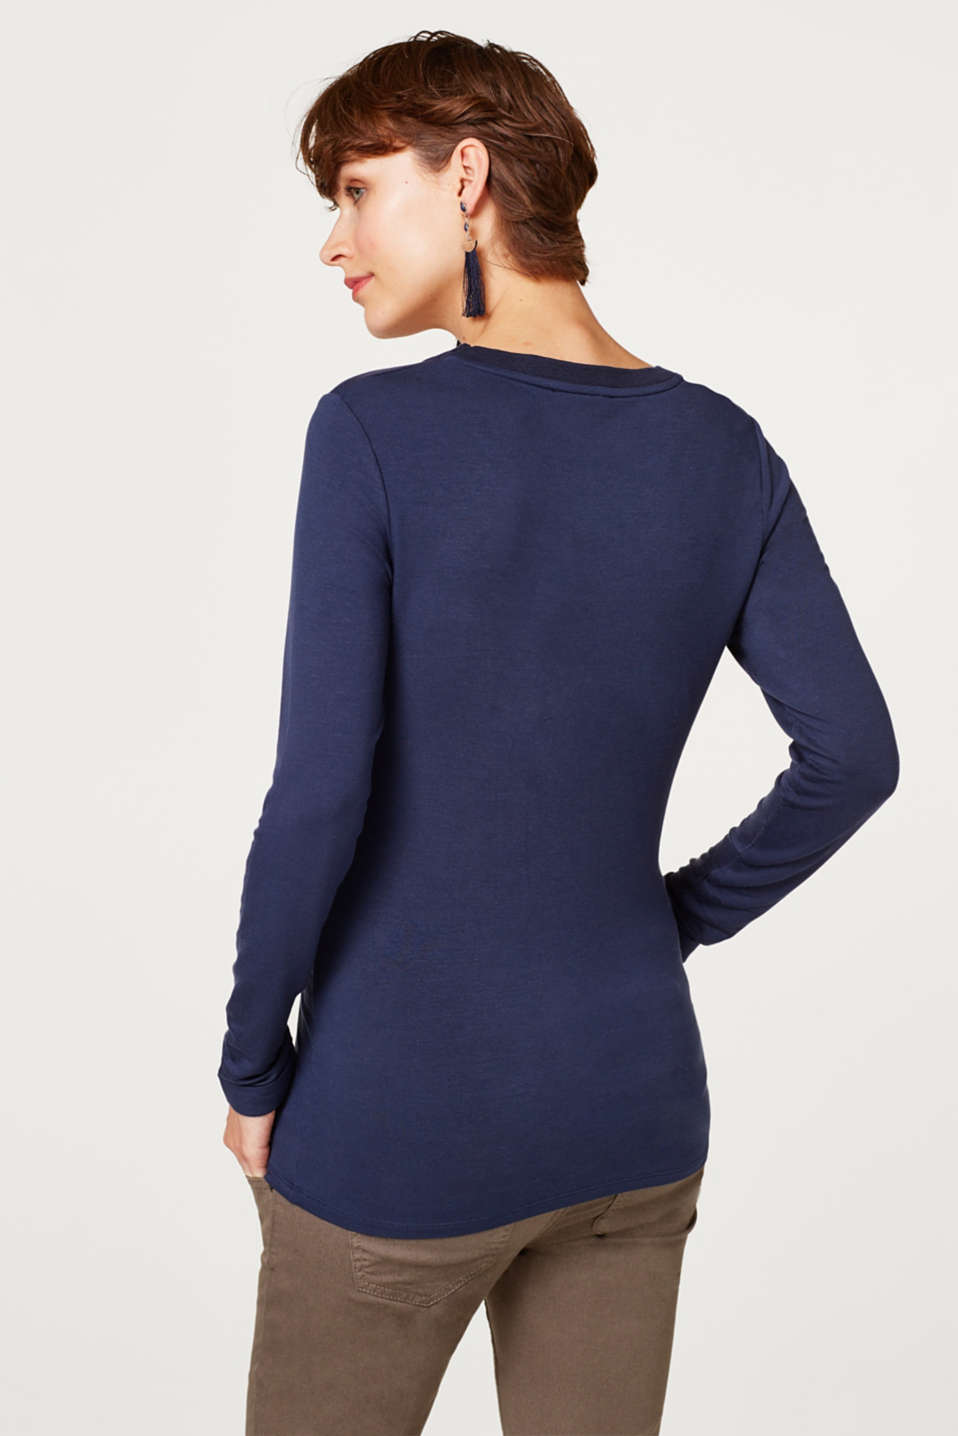 Stretch long sleeve top with open-work pattern trims, LCNIGHT BLUE, detail image number 3